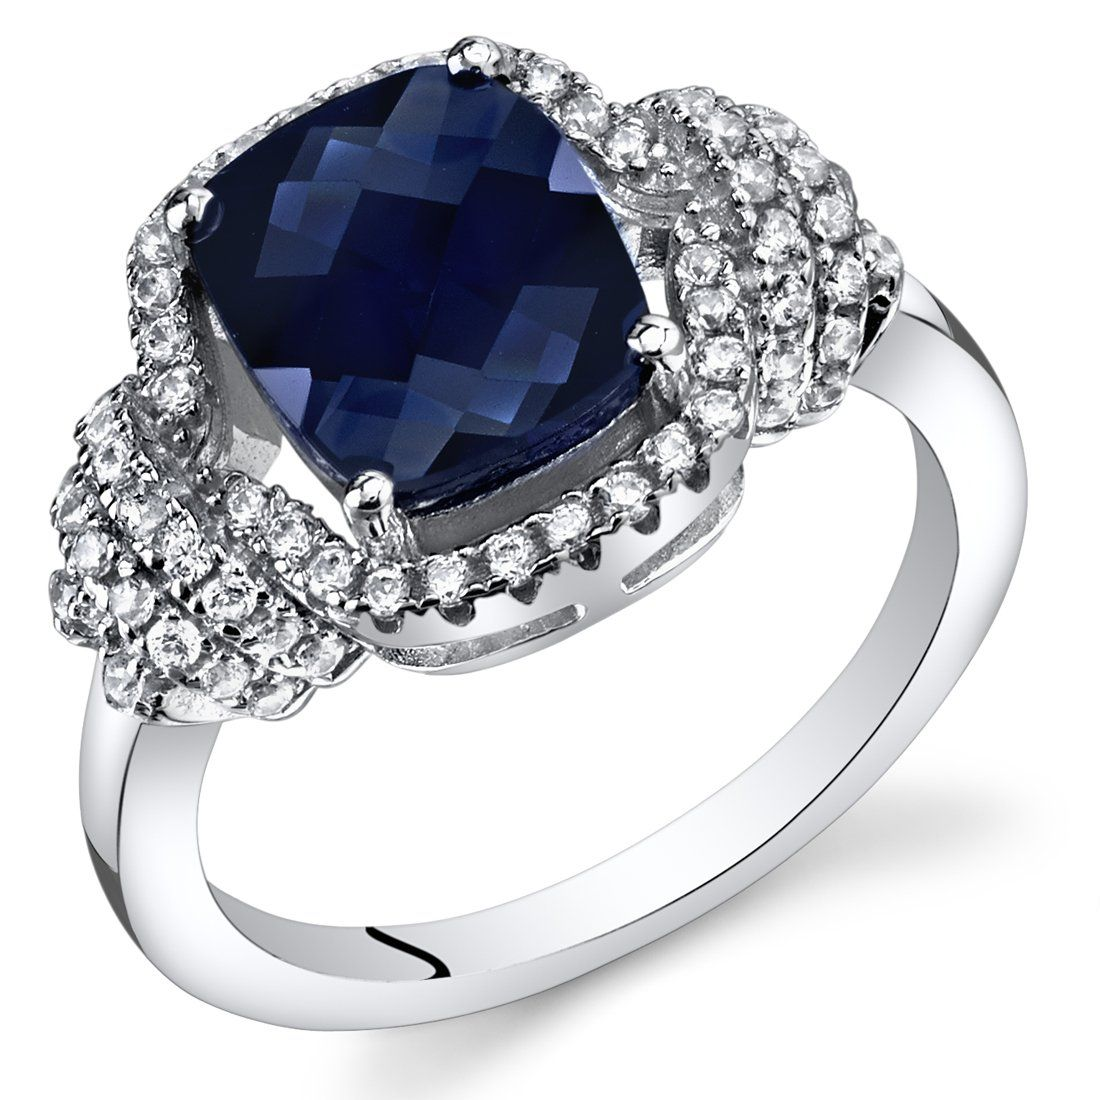 Main StoneLab Created Blue Sapphire2.75 caratsCushion Cut9x7mmCeylon Blue HueEye CleanAccent Stone(s)Cubic ZirconiaRound Brilliant CutPremium GradeMetalSterling Silver925 stamp3.9 gramsRing features exceptional Design, Craftsmanship and Finish. Blue Sapphire is the Birthstone of September. Perfect gift for Mothers Day, Birthdays, Valentines Day, Graduation, Christmas or just about any other occasion. Style SR11414